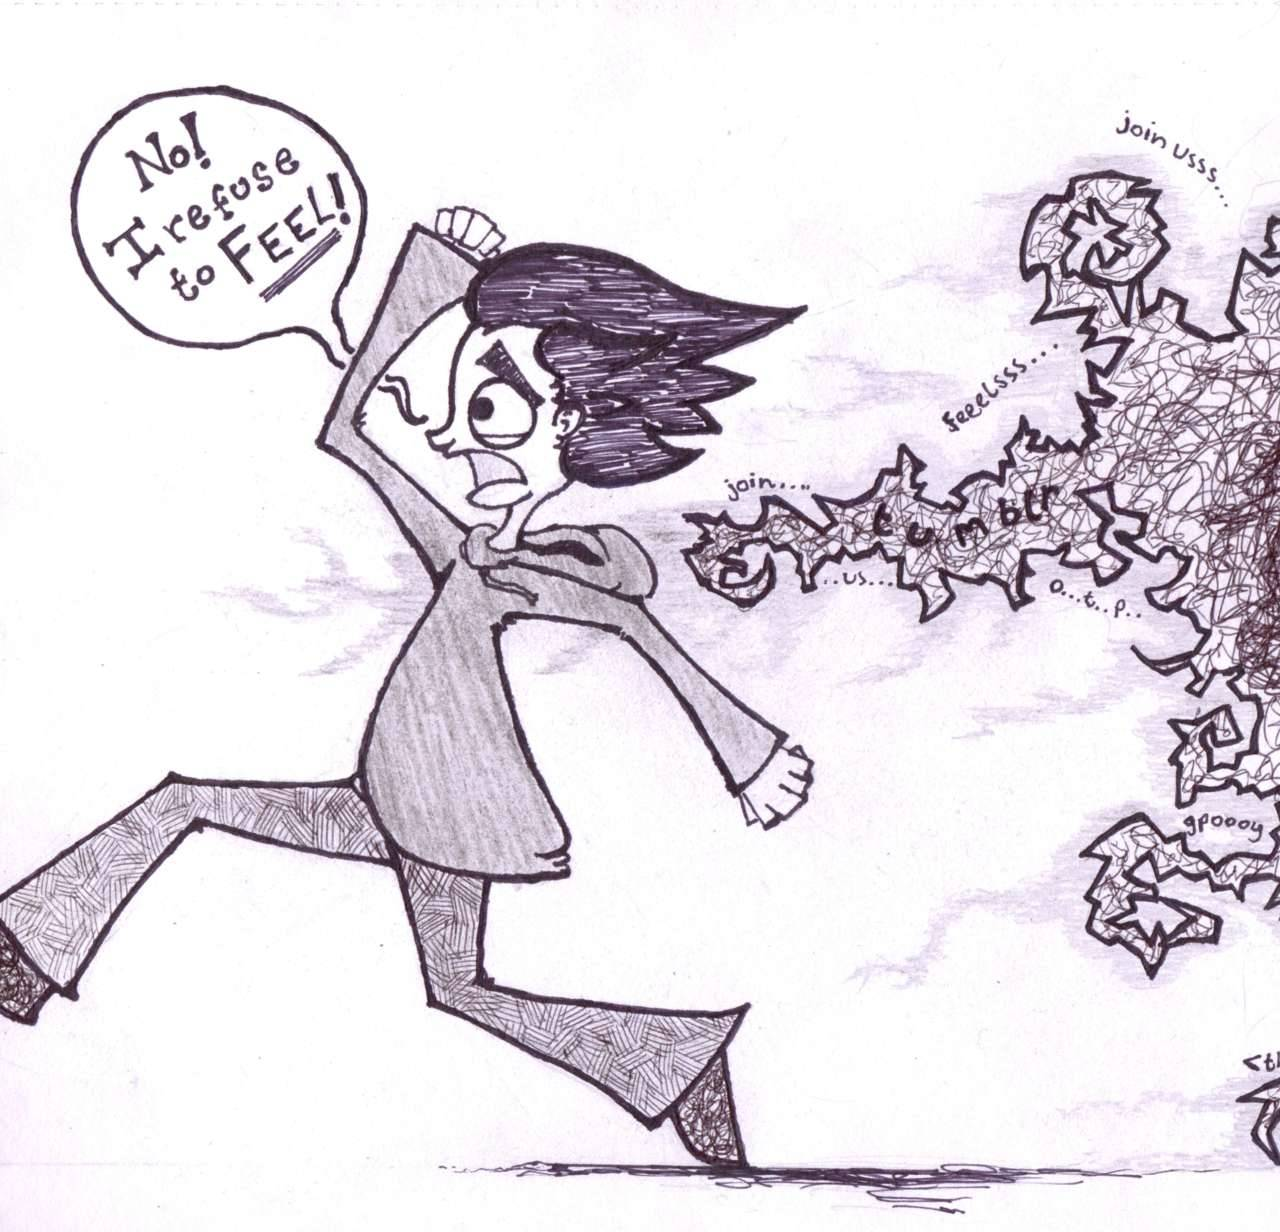 Me, running from tumblr.Basically, I wanted to visualise how I feel about fandoms, and specifically tumblr-based fandoms.I METAPHORICALLY RUN AWAY IN FEAR.This is a simplified version of the idea - Hopefully one day I'll have the skill to properly convey what I envisioned.